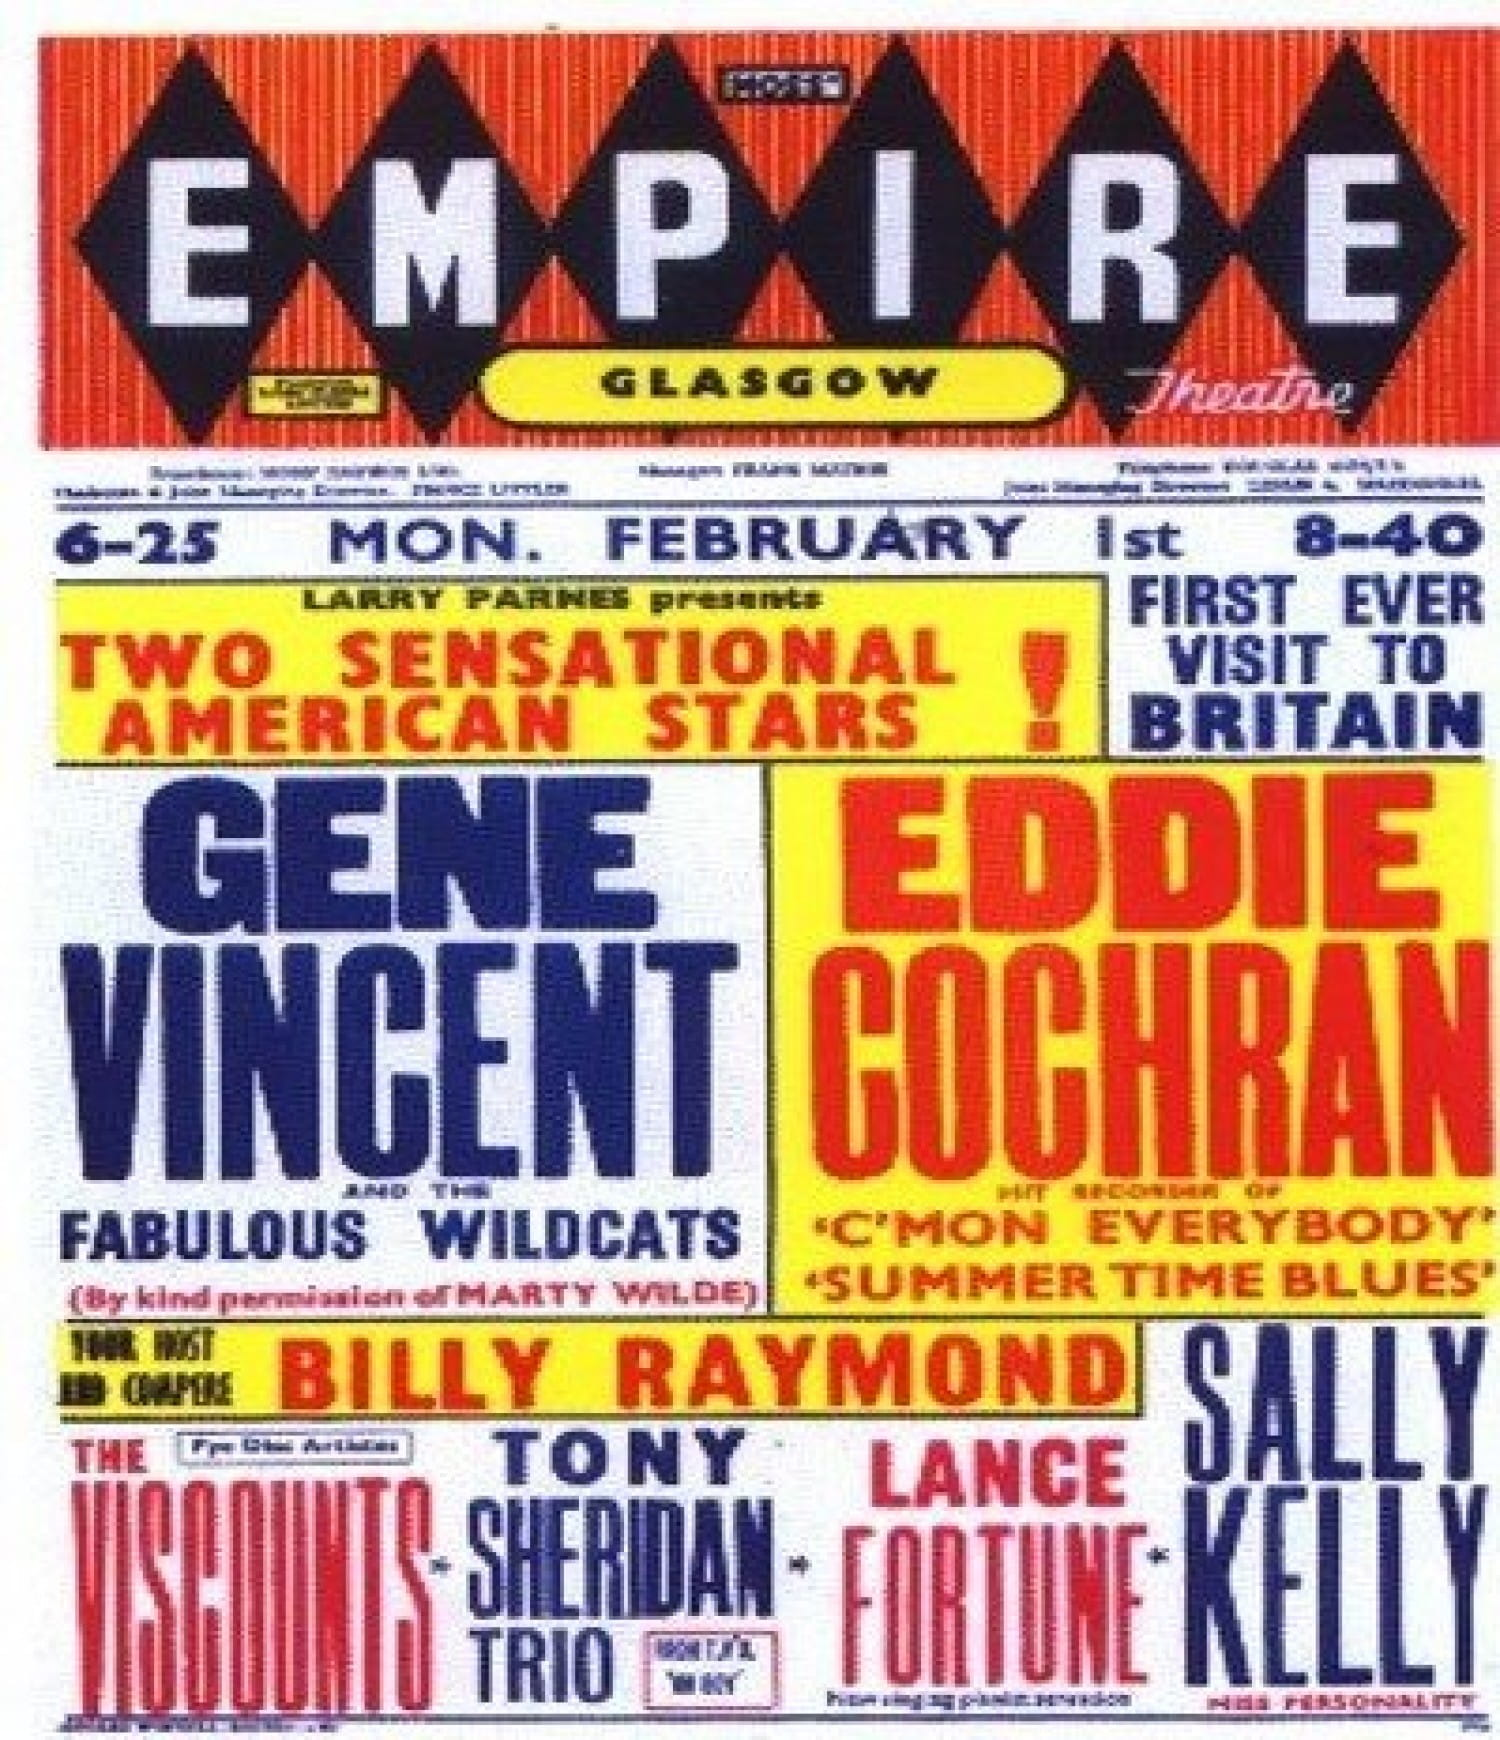 The poster for the Empire shows